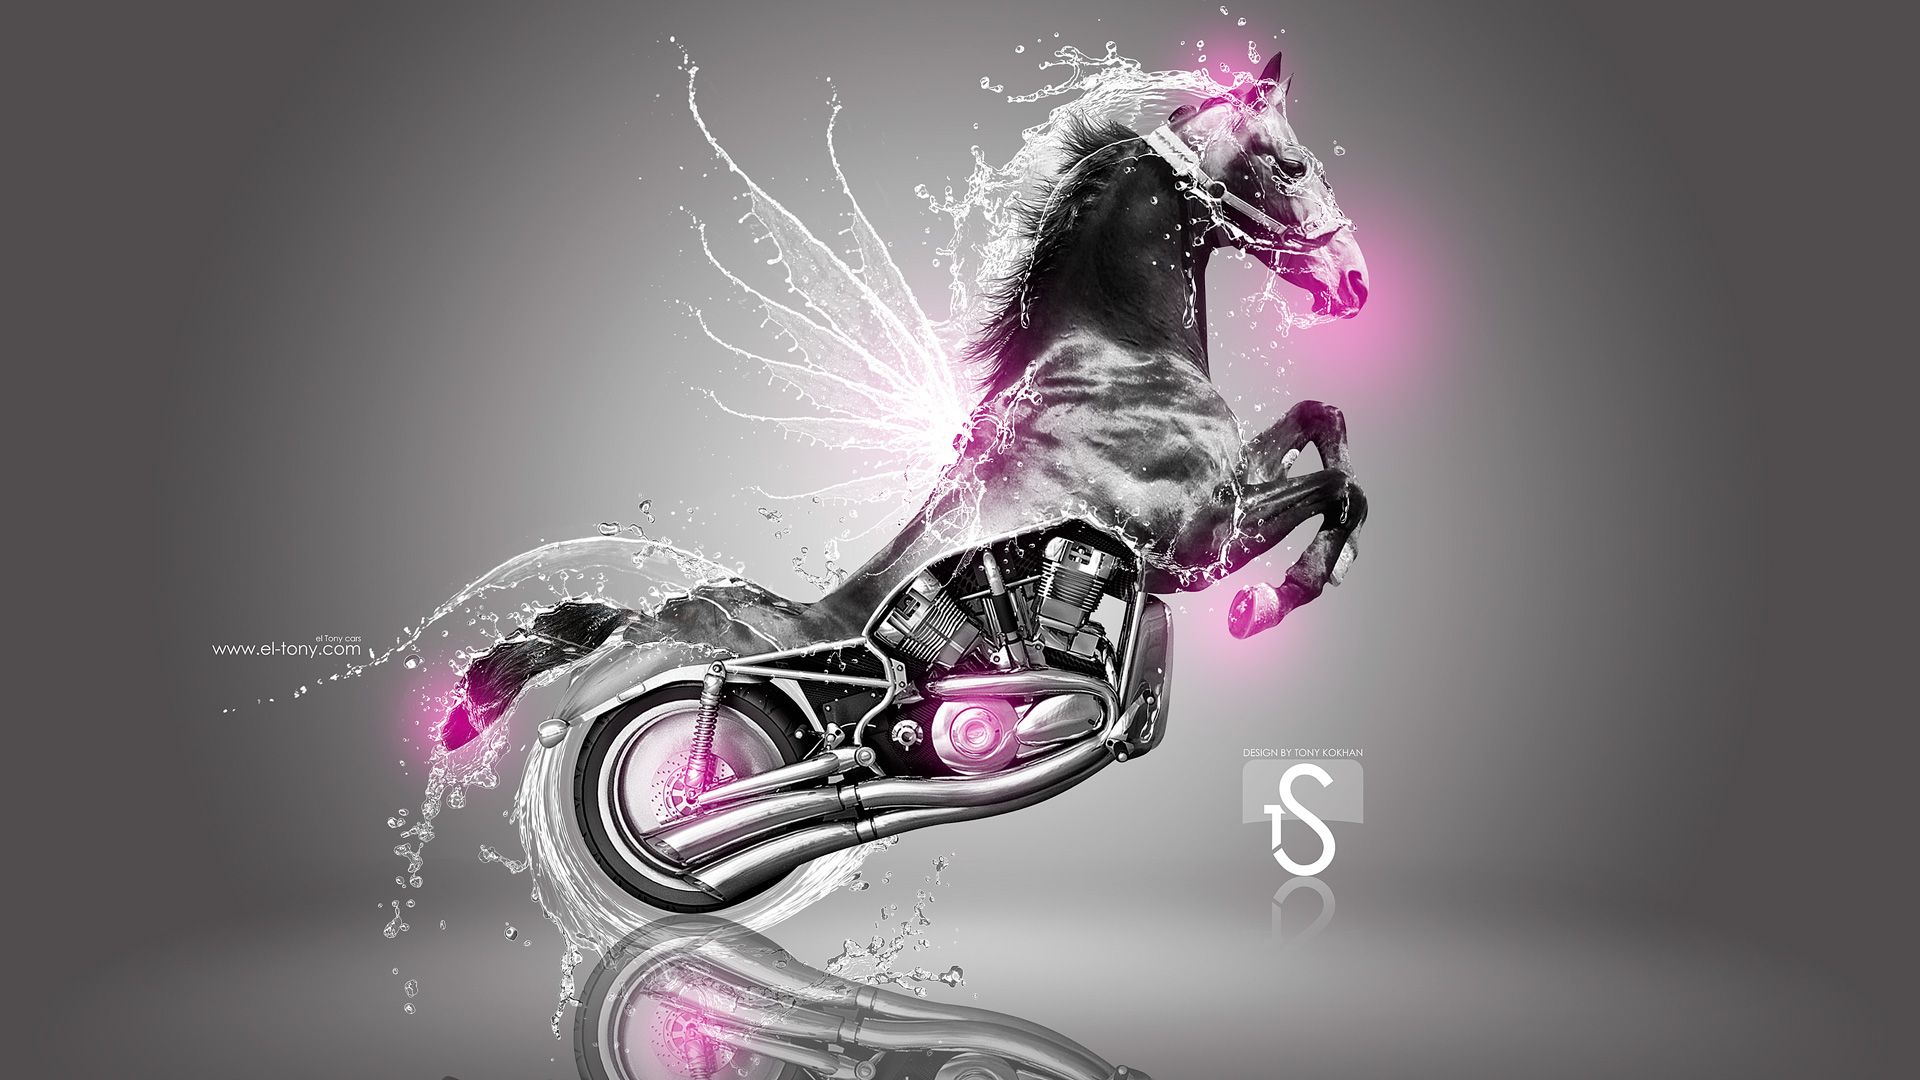 Merveilleux Moto Harley Davidson Pink Fire Horse Sb 2013 Design By Tony  Kokhan Car Pictures